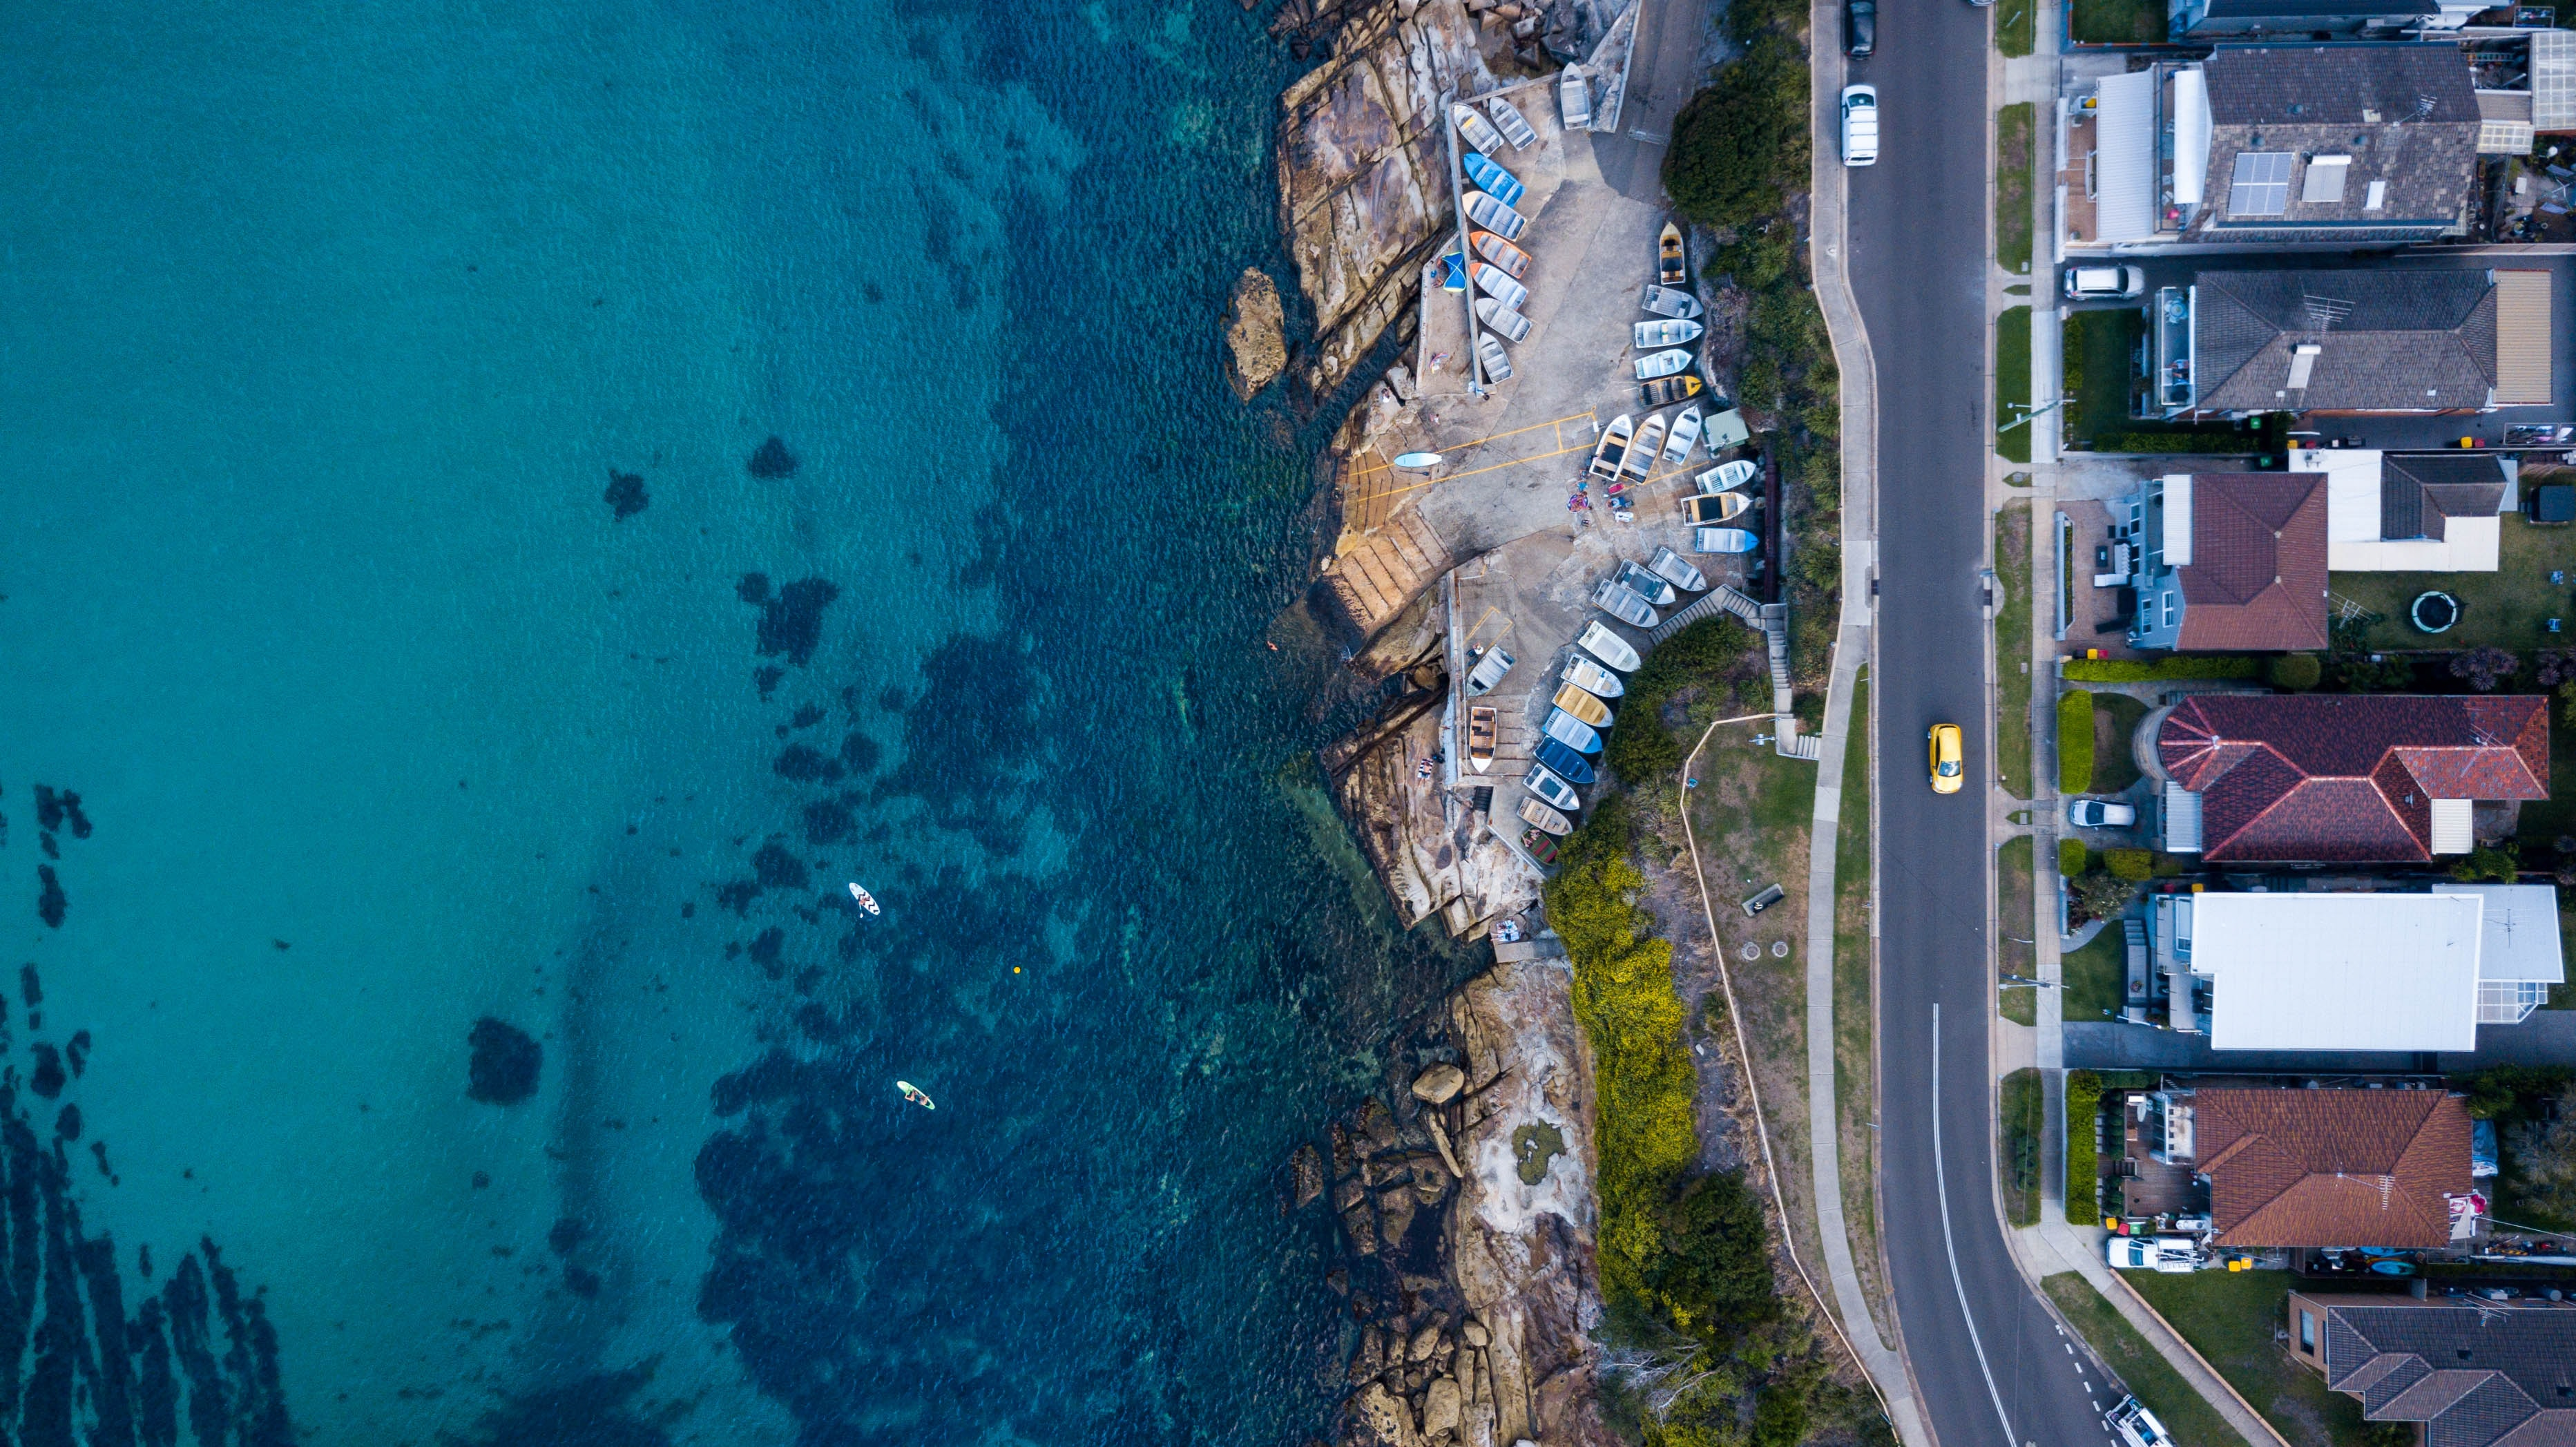 aerial photography of road near body of water at daytime